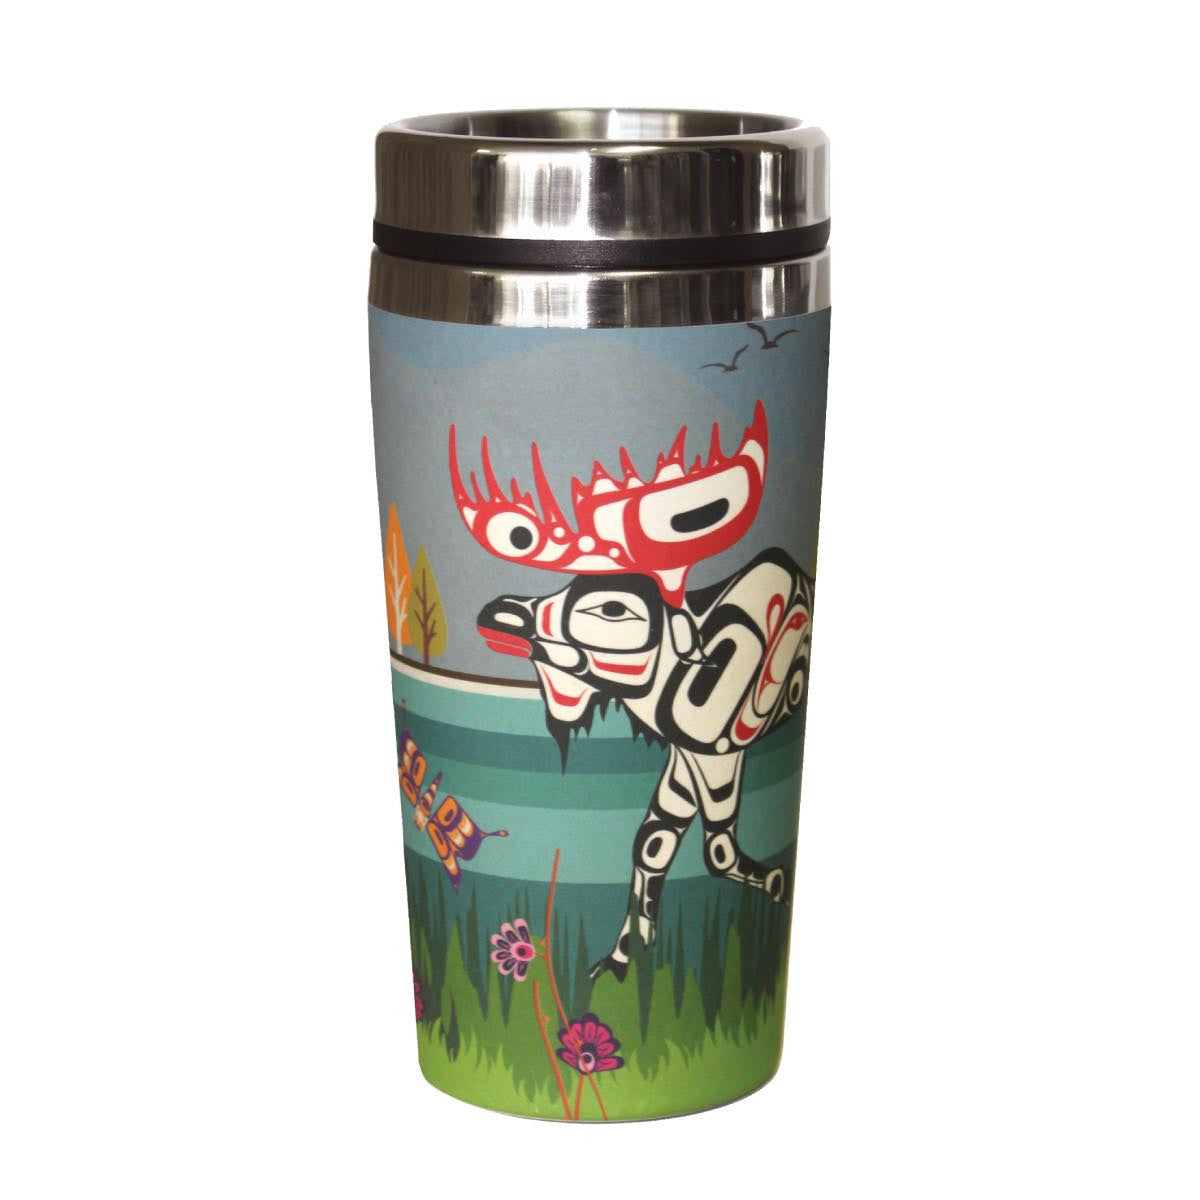 Bamboo Stainless Steel Travel Mug - Moose